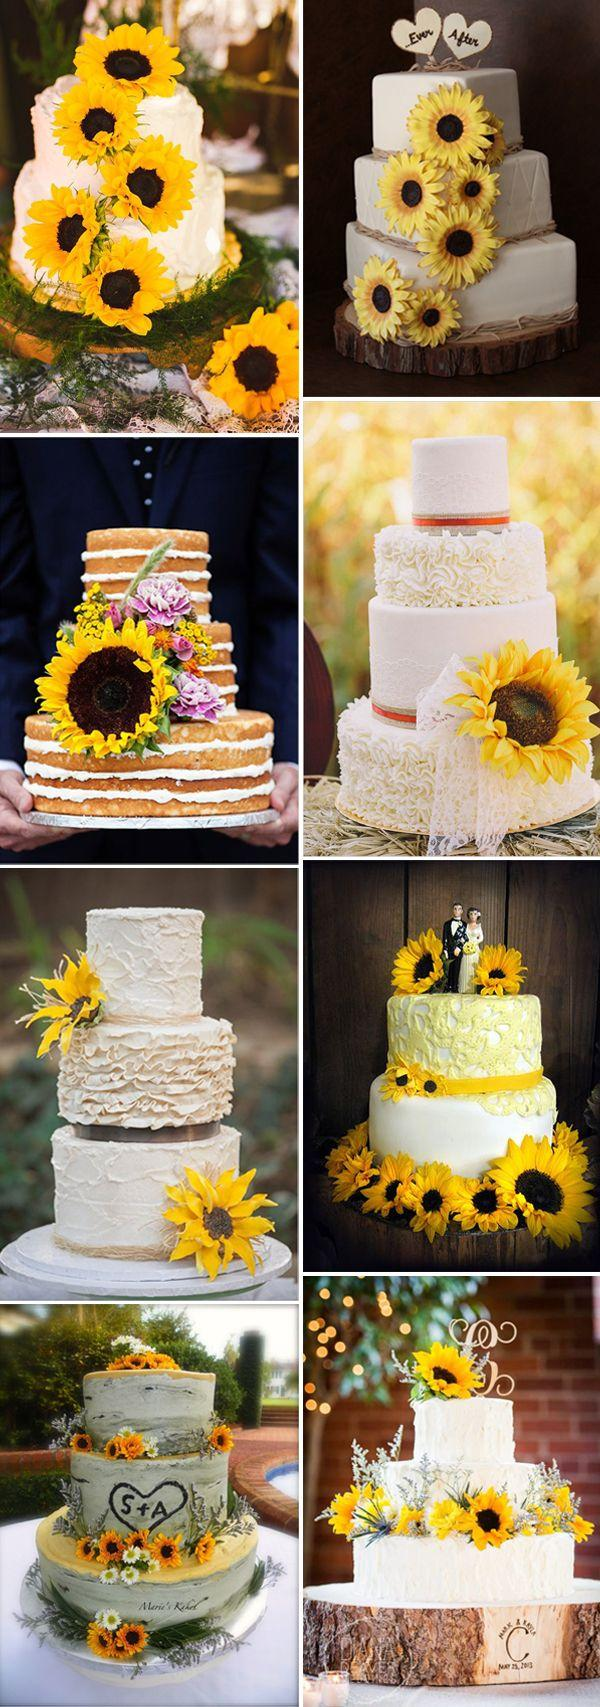 Mariage - 32 Orange & Yellow Fall Wedding Cakes With Maple Leaves , Pumpkins & Sunflowers